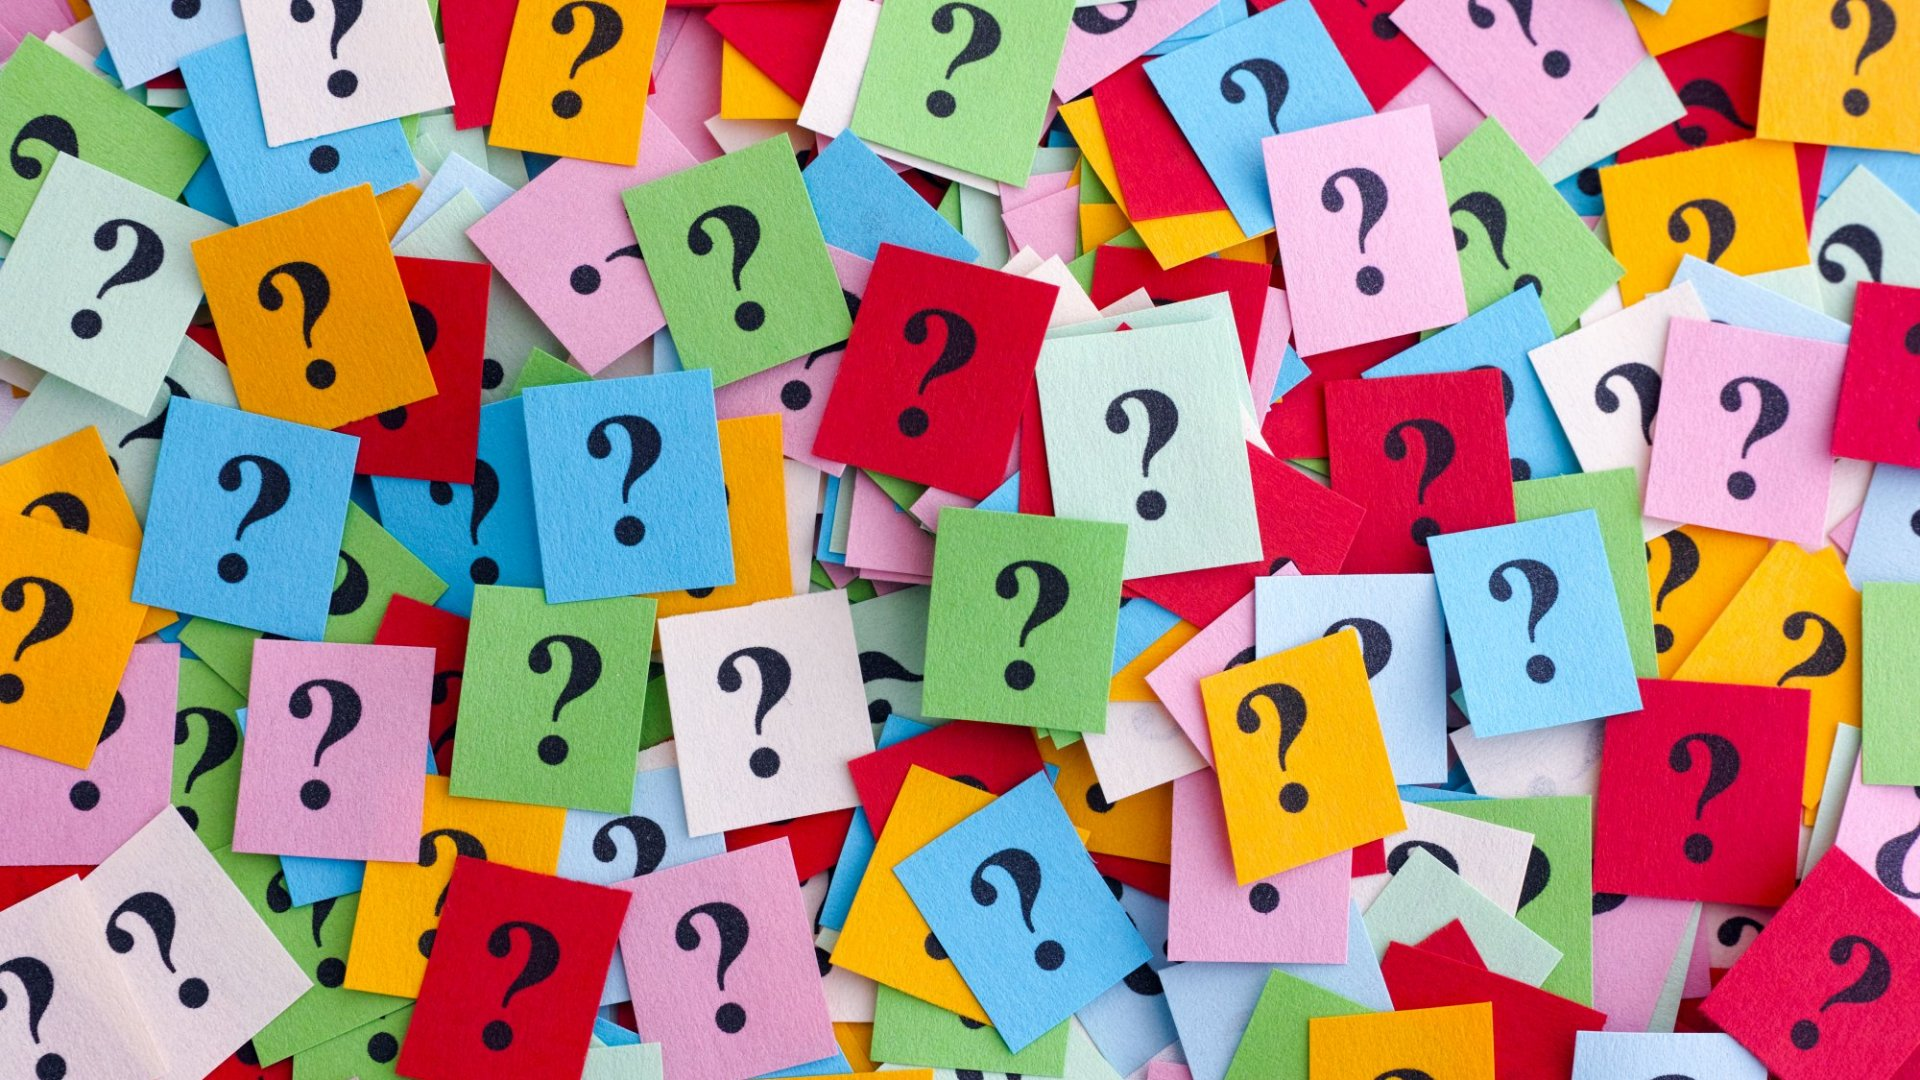 Should You Give Job Candidates the Interview Questions in Advance?